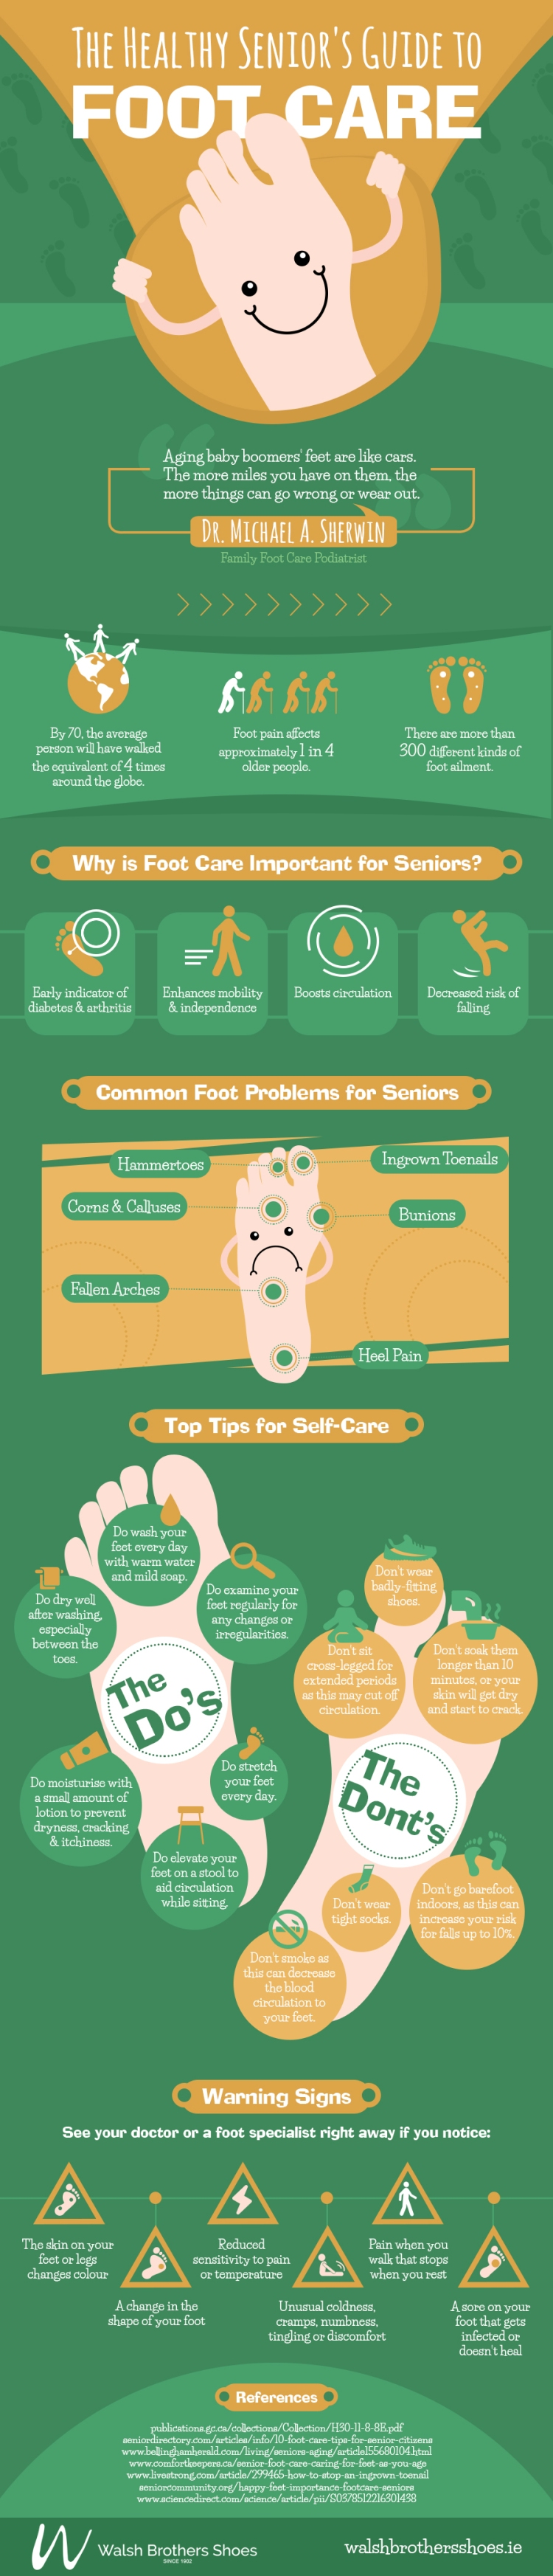 The Healthy Senior's Guide To Footwear(Infographic)